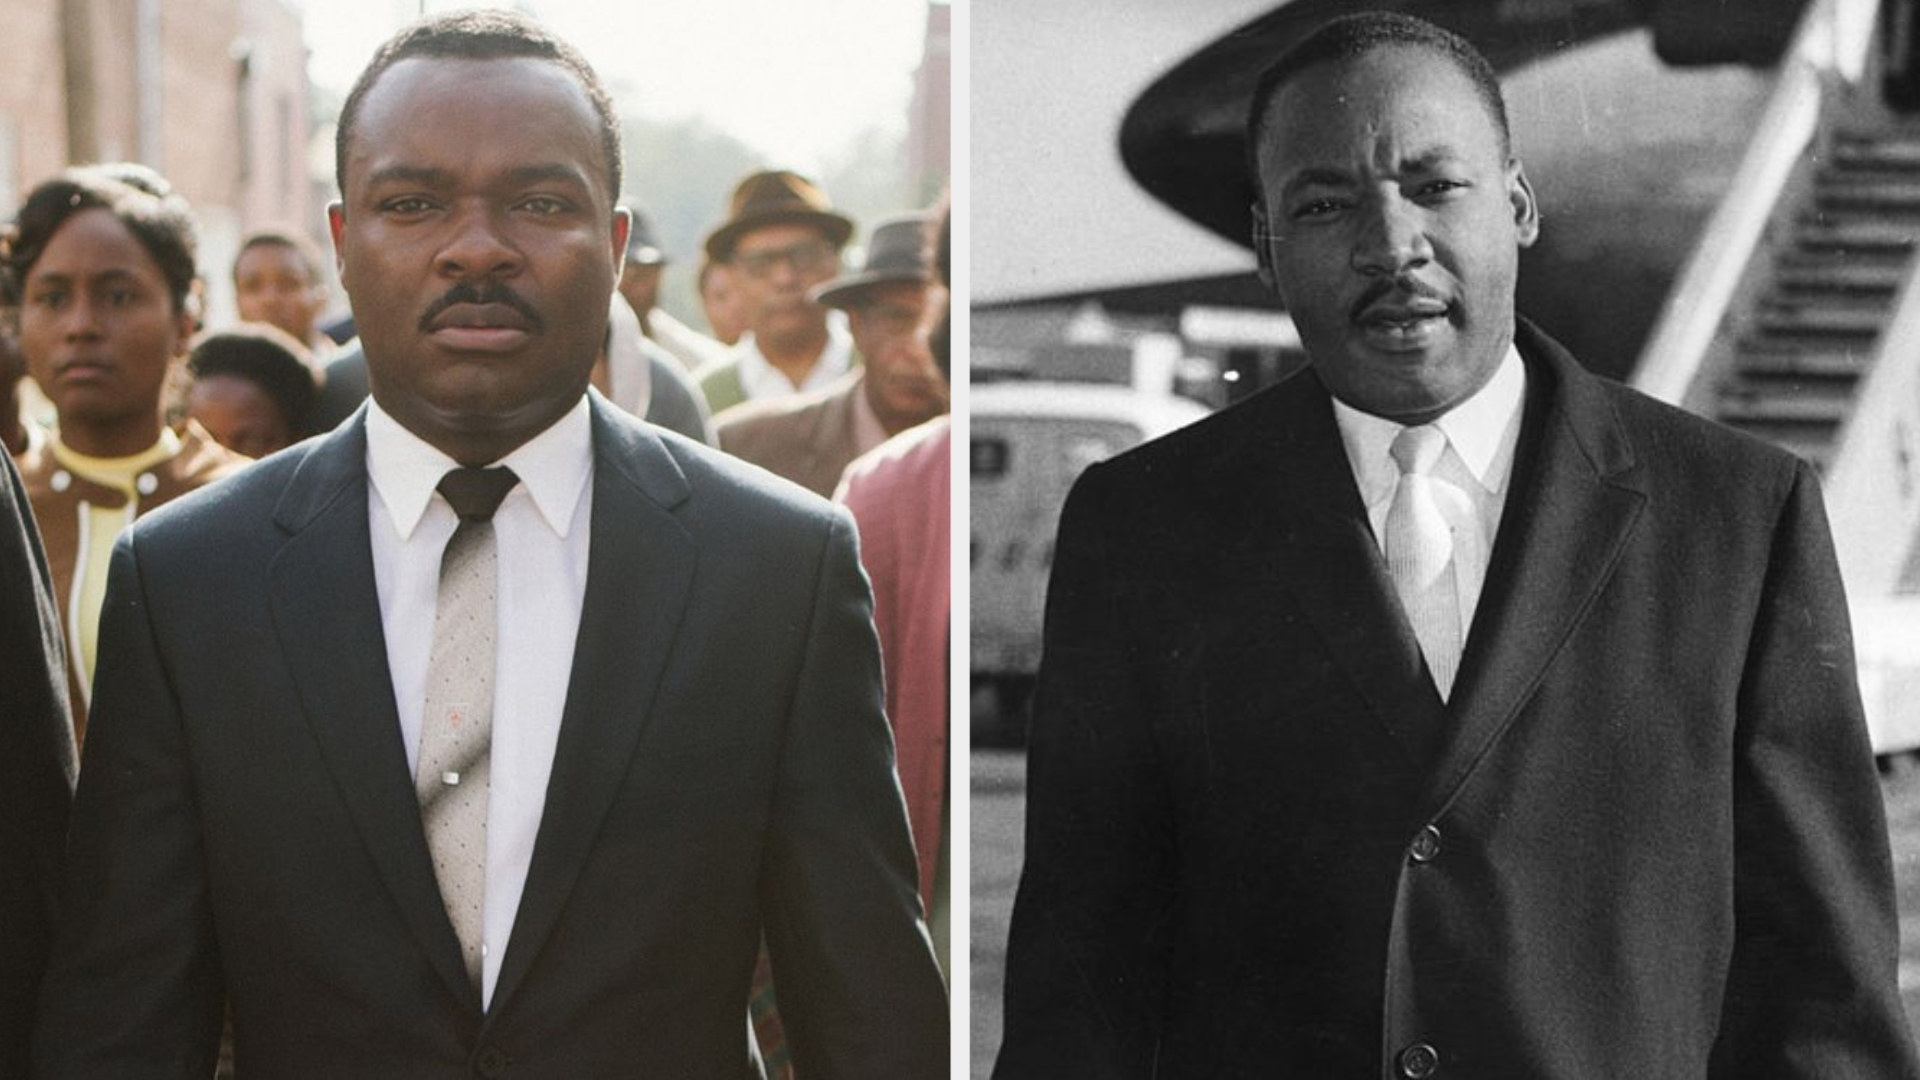 David Oyelowo as Dr. Martin Luther King Jr., wearing a suit and a serious expression on his face, marching in Selma, Alabama; Dr. Martin Luther King Jr. wearing a suit and tie with a serious/playful expression on his face, stepping out of an airplane